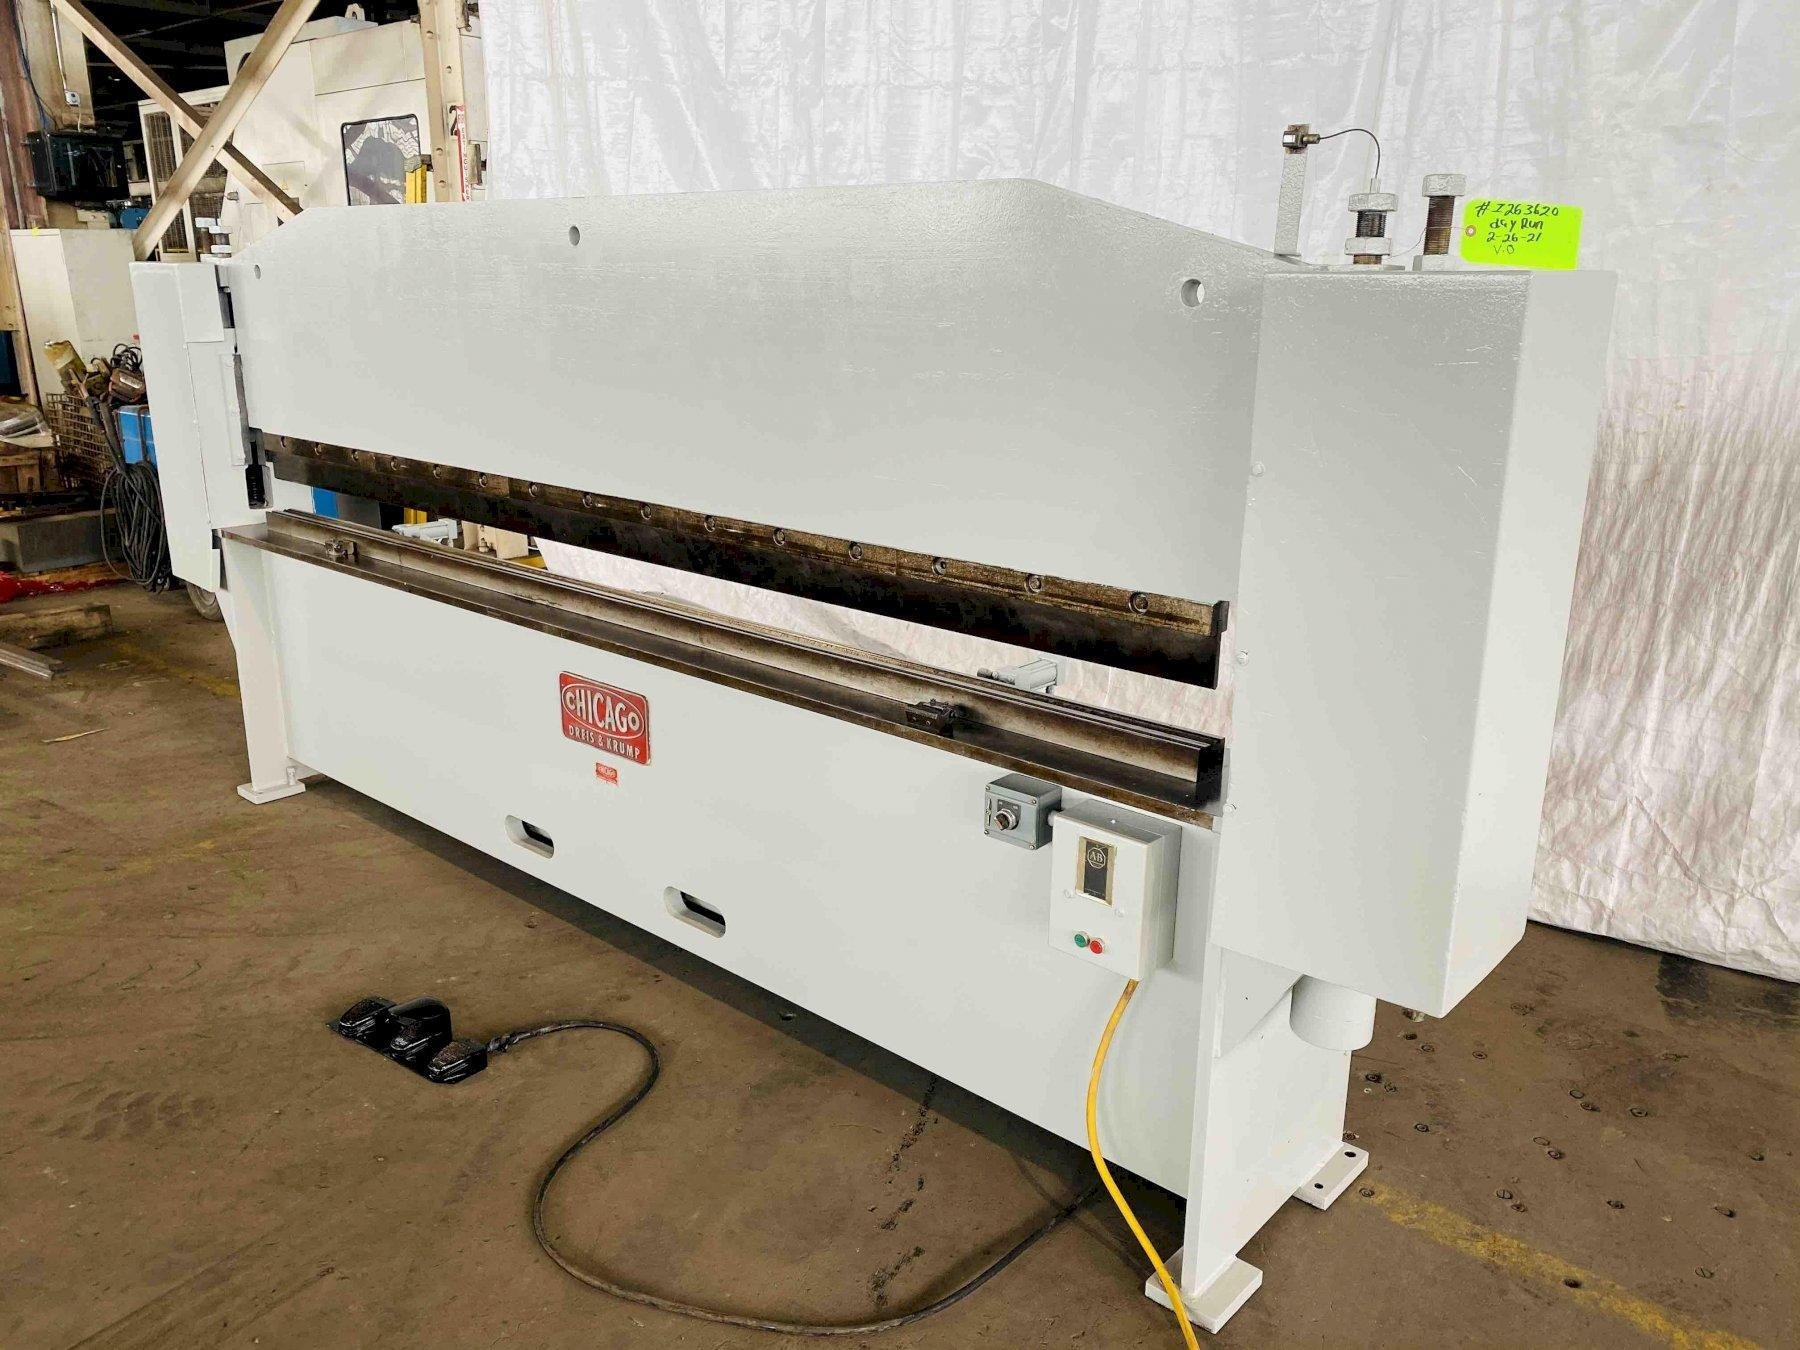 16 GAUGE X 10' CHICAGO DRIES & KRUMP MODEL SBA-104 SPEEDIBENDER SHEET BENDER BRAKE. STOCK # 1263620